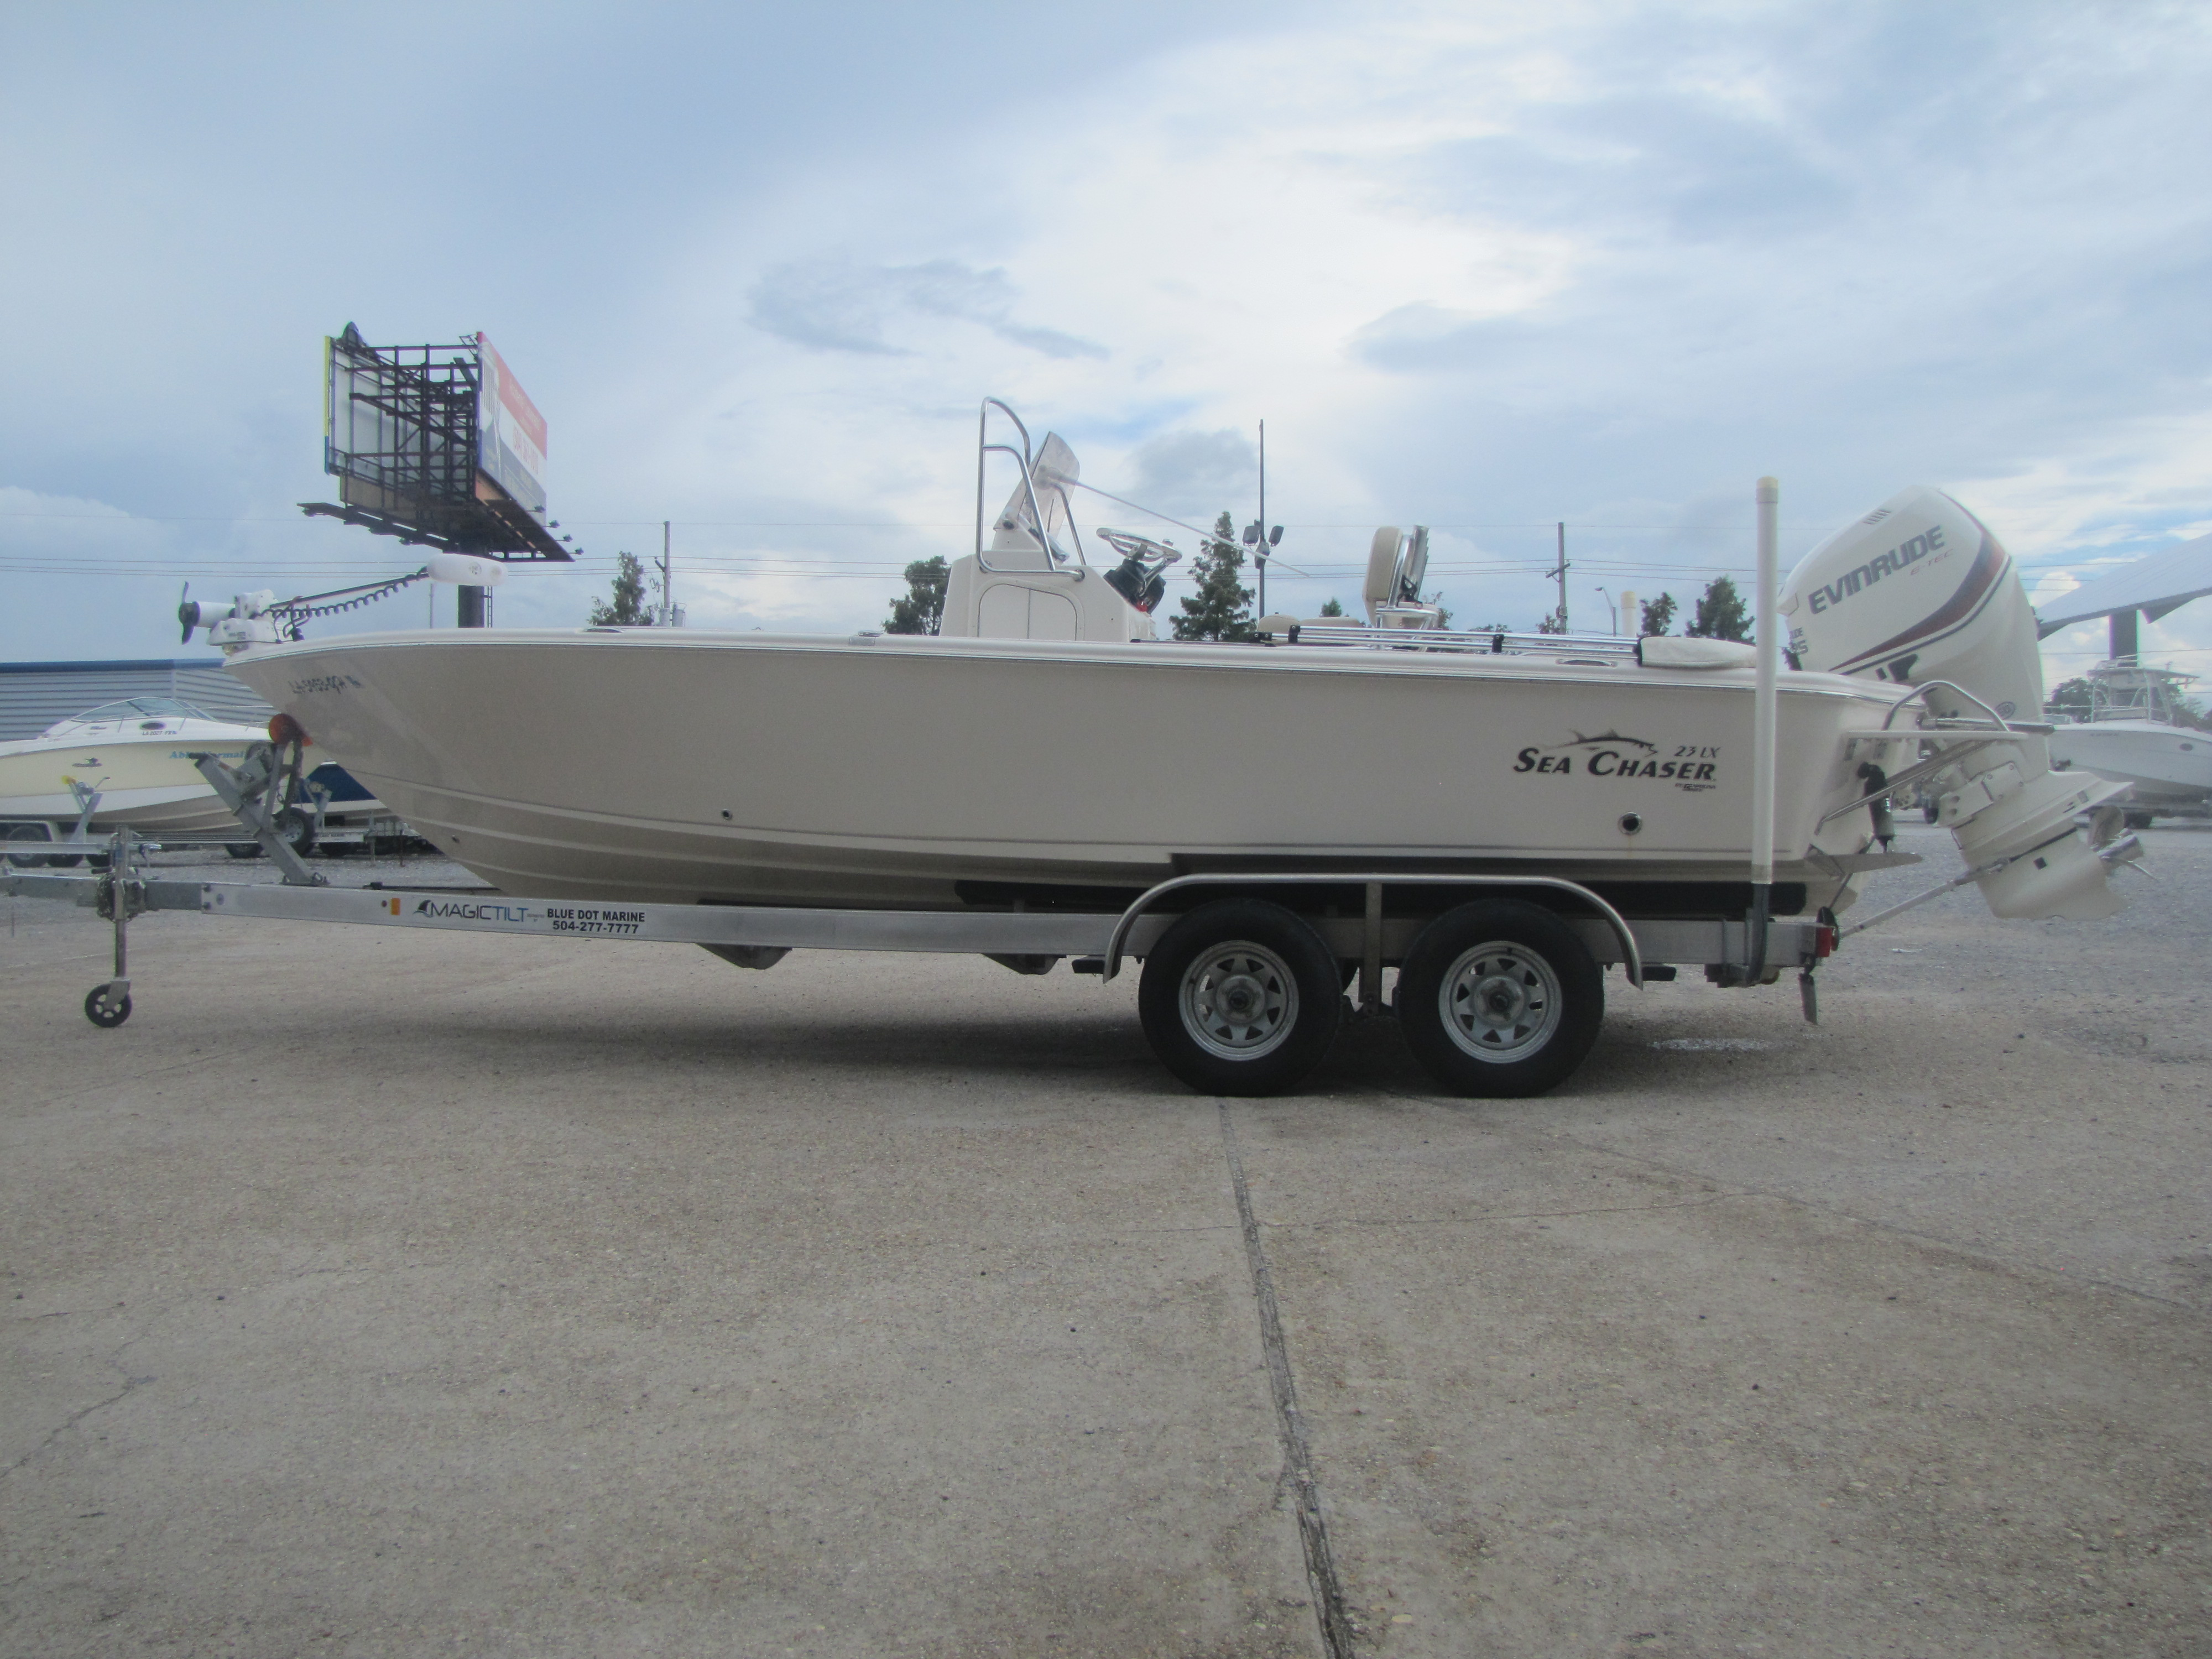 2018 Sea Chaser boat for sale, model of the boat is 23 LX & Image # 5 of 19